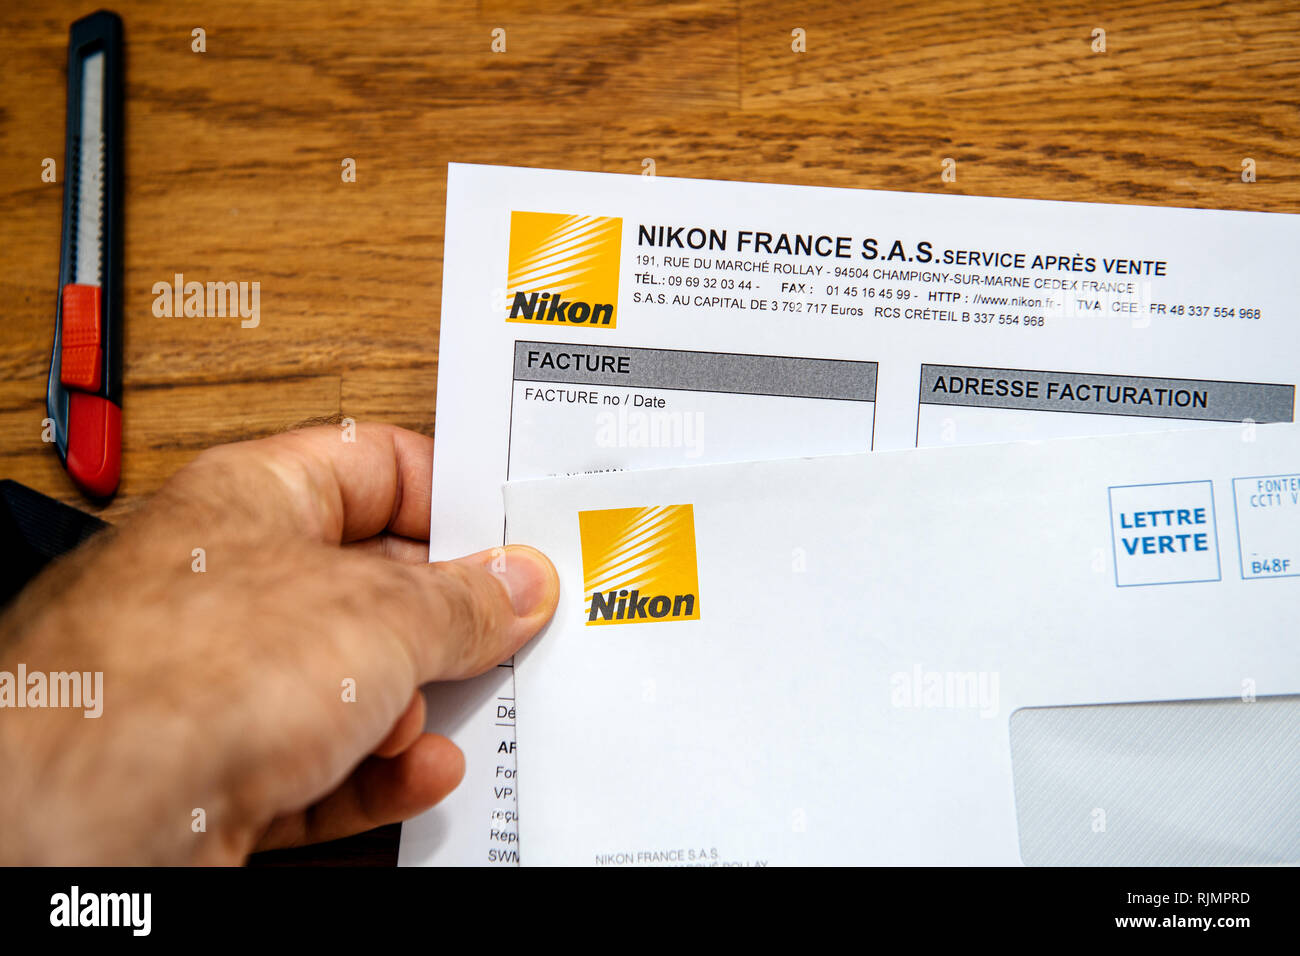 PARIS, FRANCE - Aug 8, 2018:  Man holding on office table a letter and invoice from Nikon Corporation for the camera equipment  - Stock Image